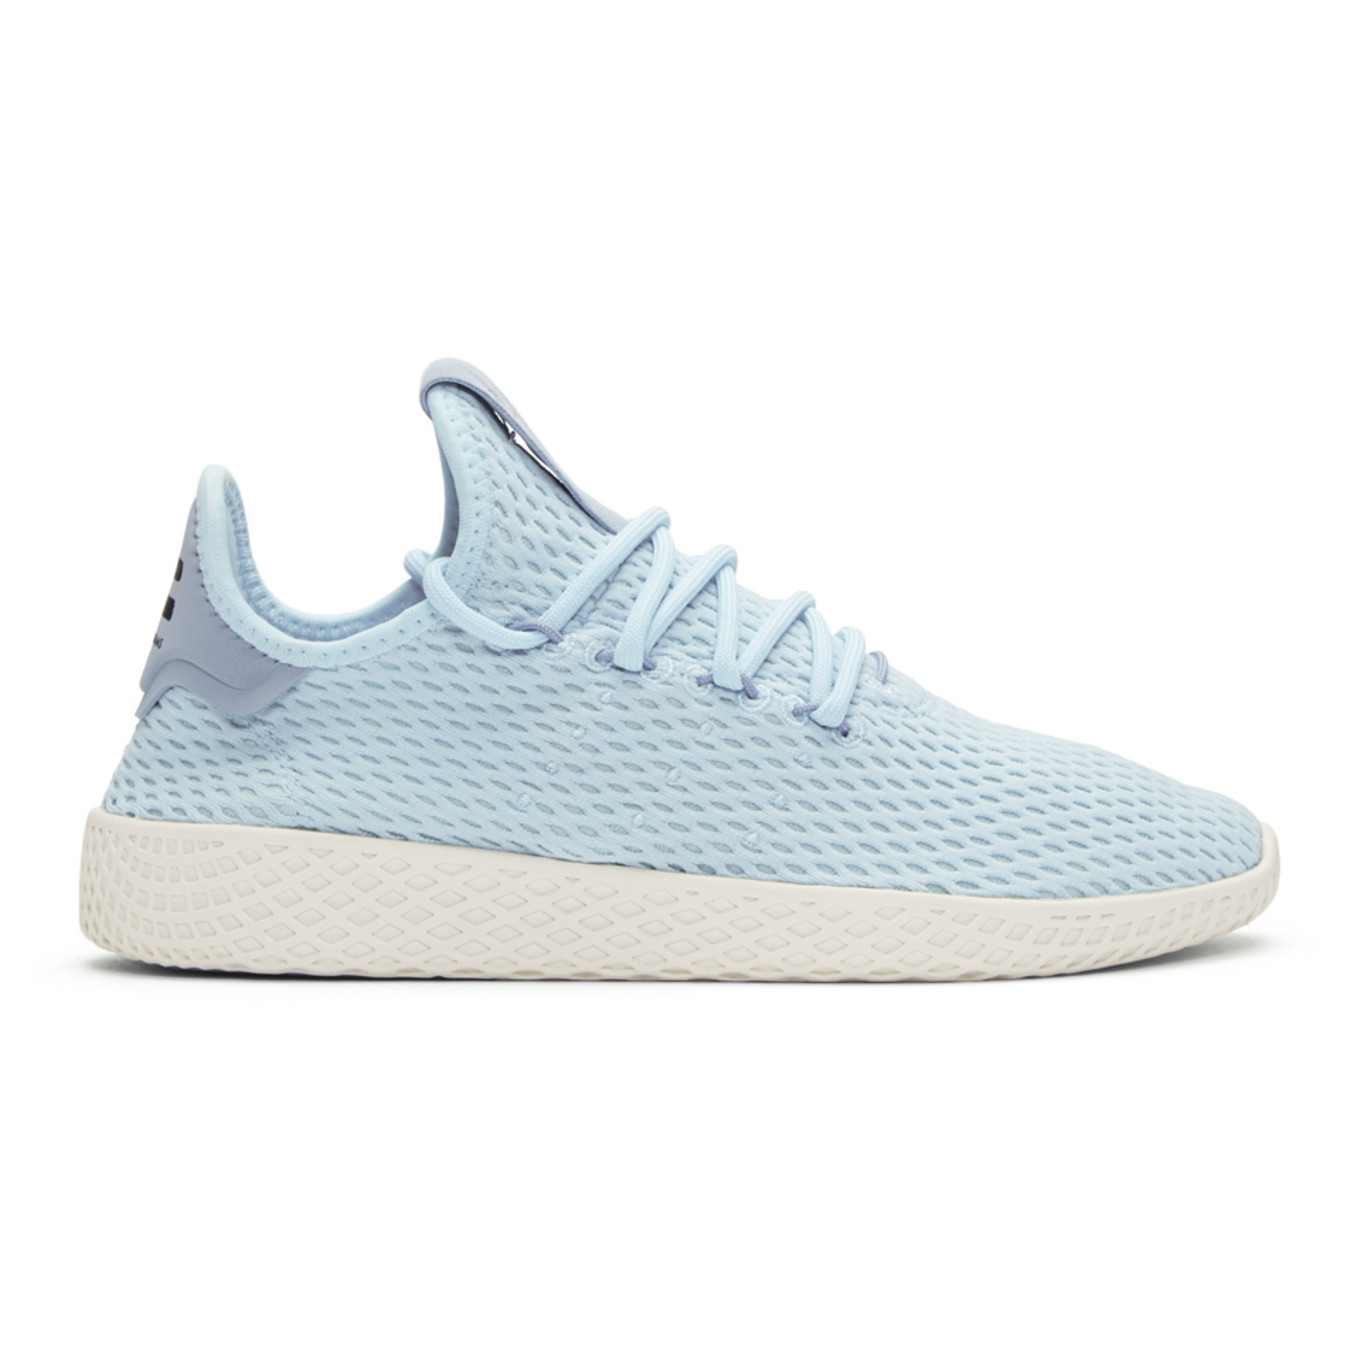 Blue Tennis Hu Sneakers by Adidas Originals X Pharrell Williams